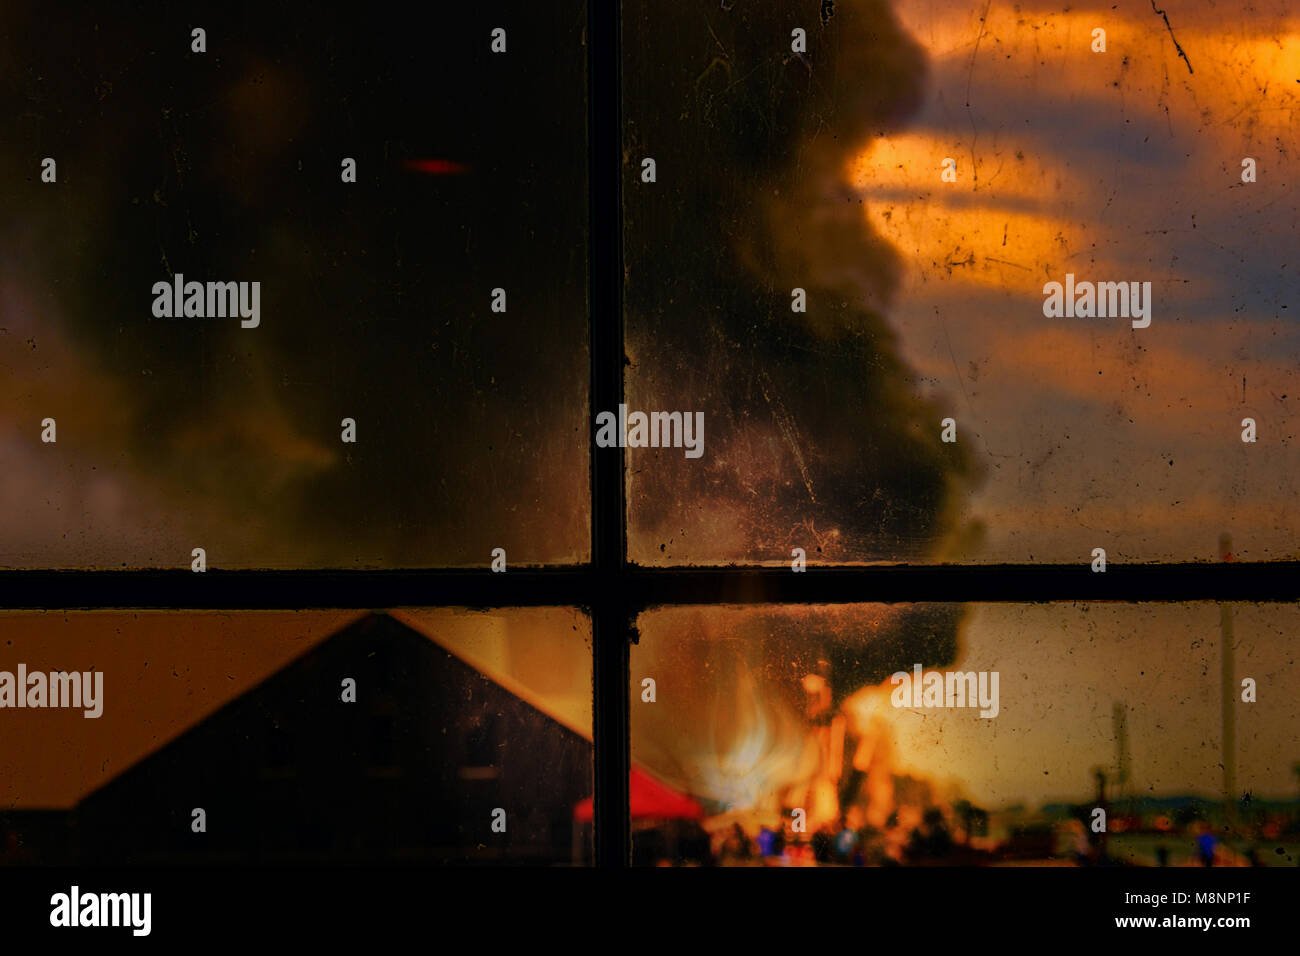 view from a window on a burning house, smoke and flames of fire, people silhouettes, soot on the glass and in the - Stock Image